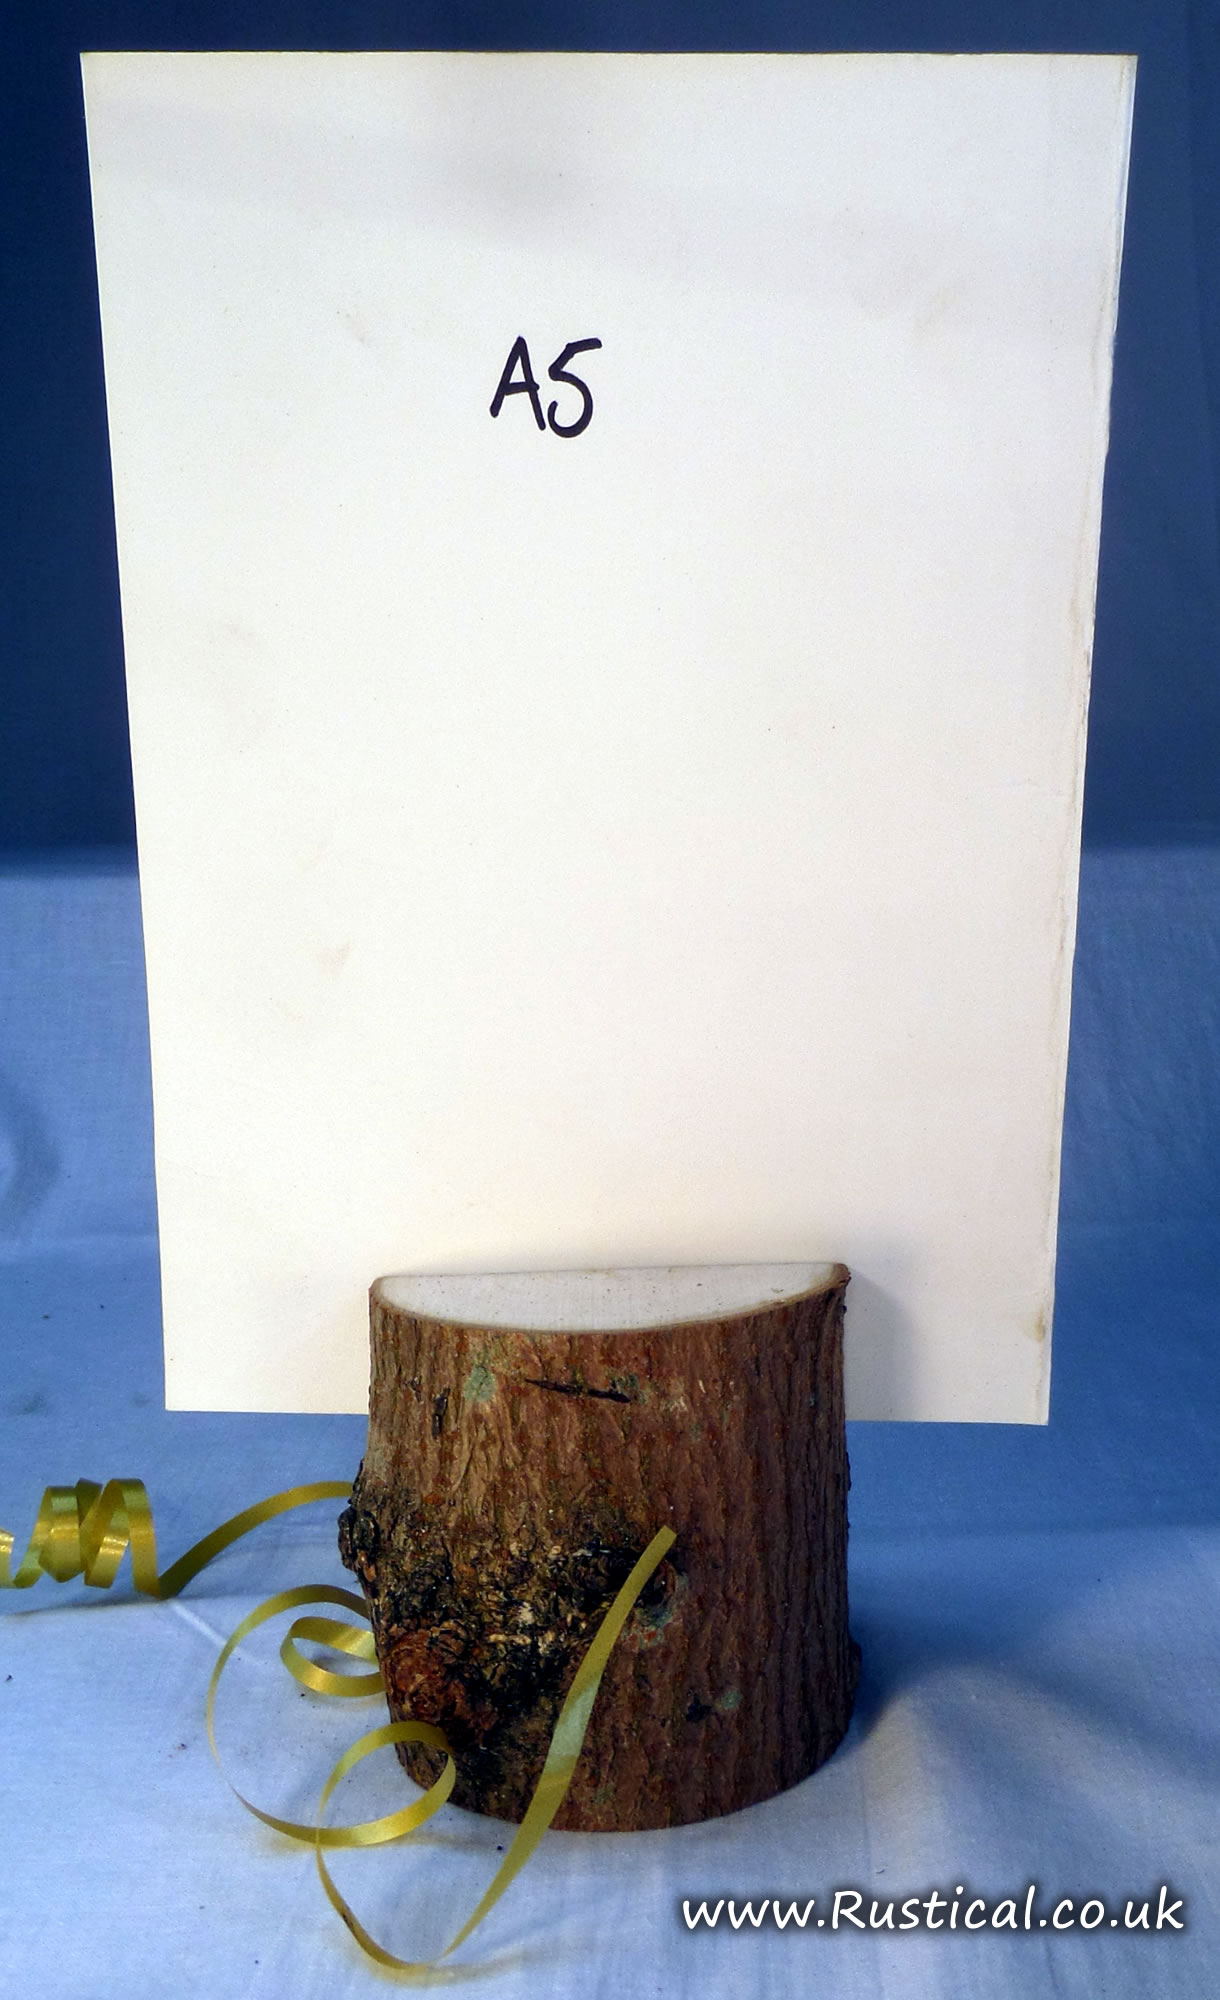 Rustic table number / menu holders for Restaurants, Cafe and Wedding Tables